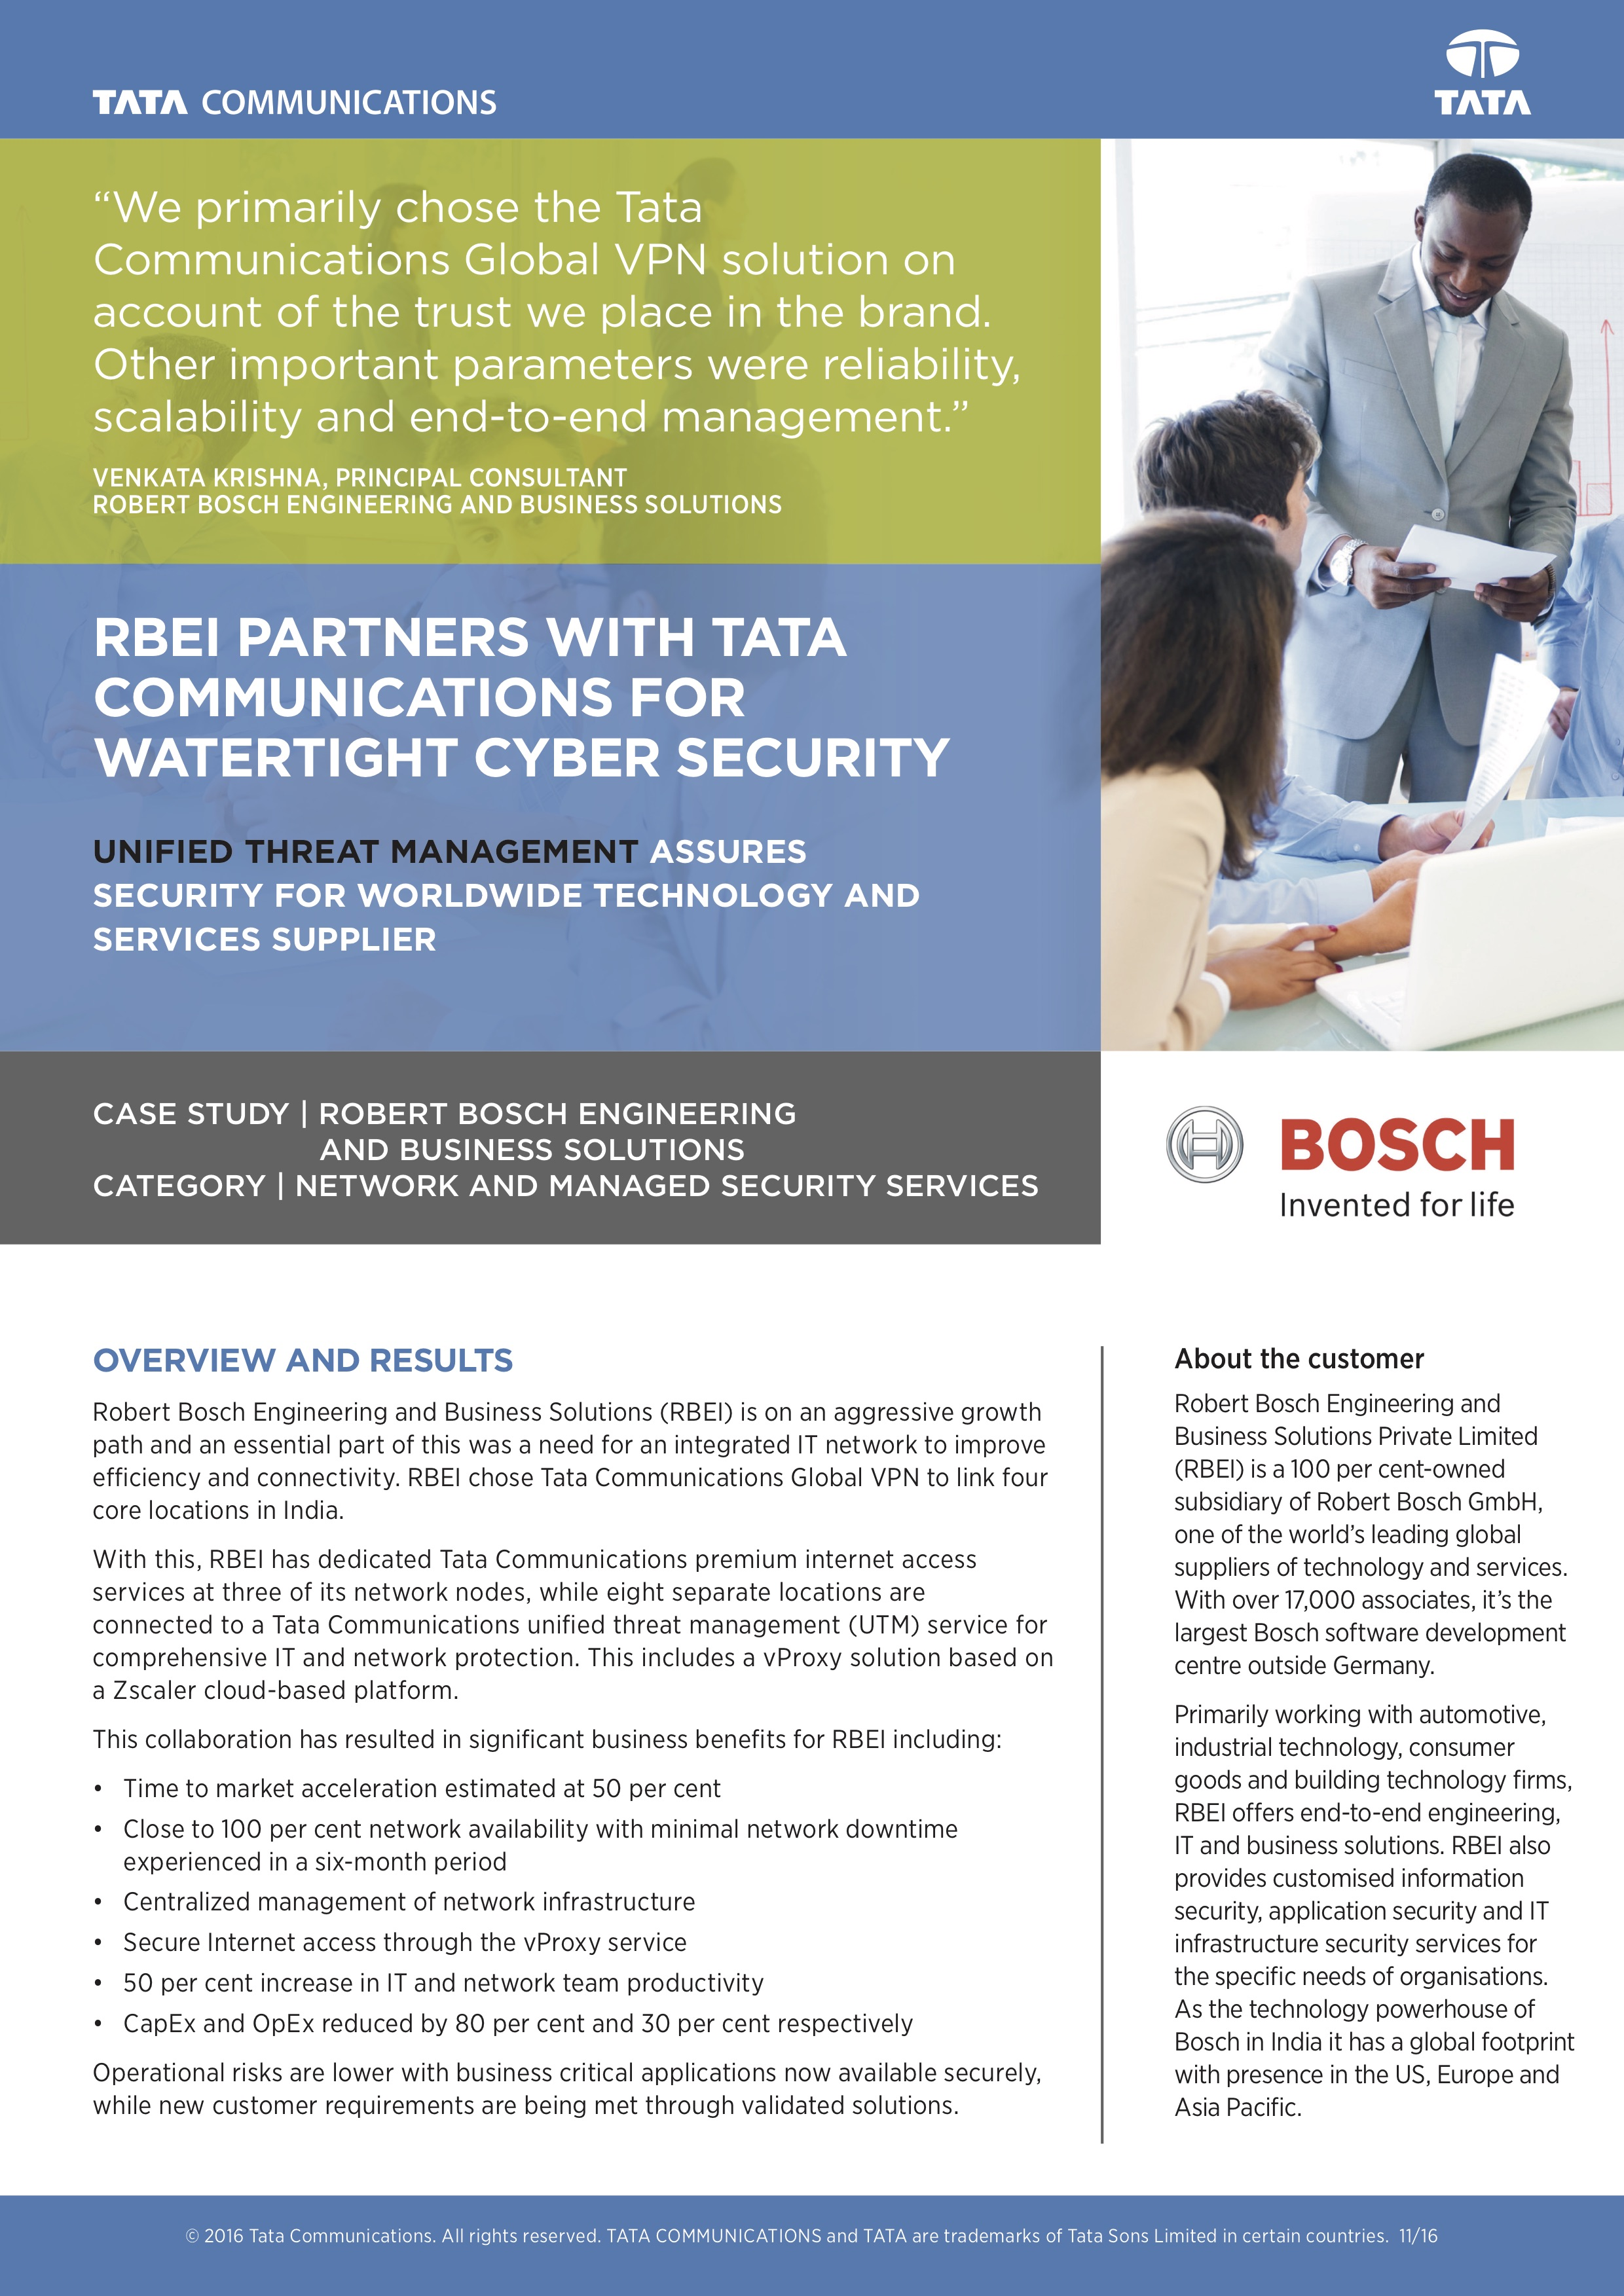 RBEI Partners With Tata Communications for Watertight Cyber Security